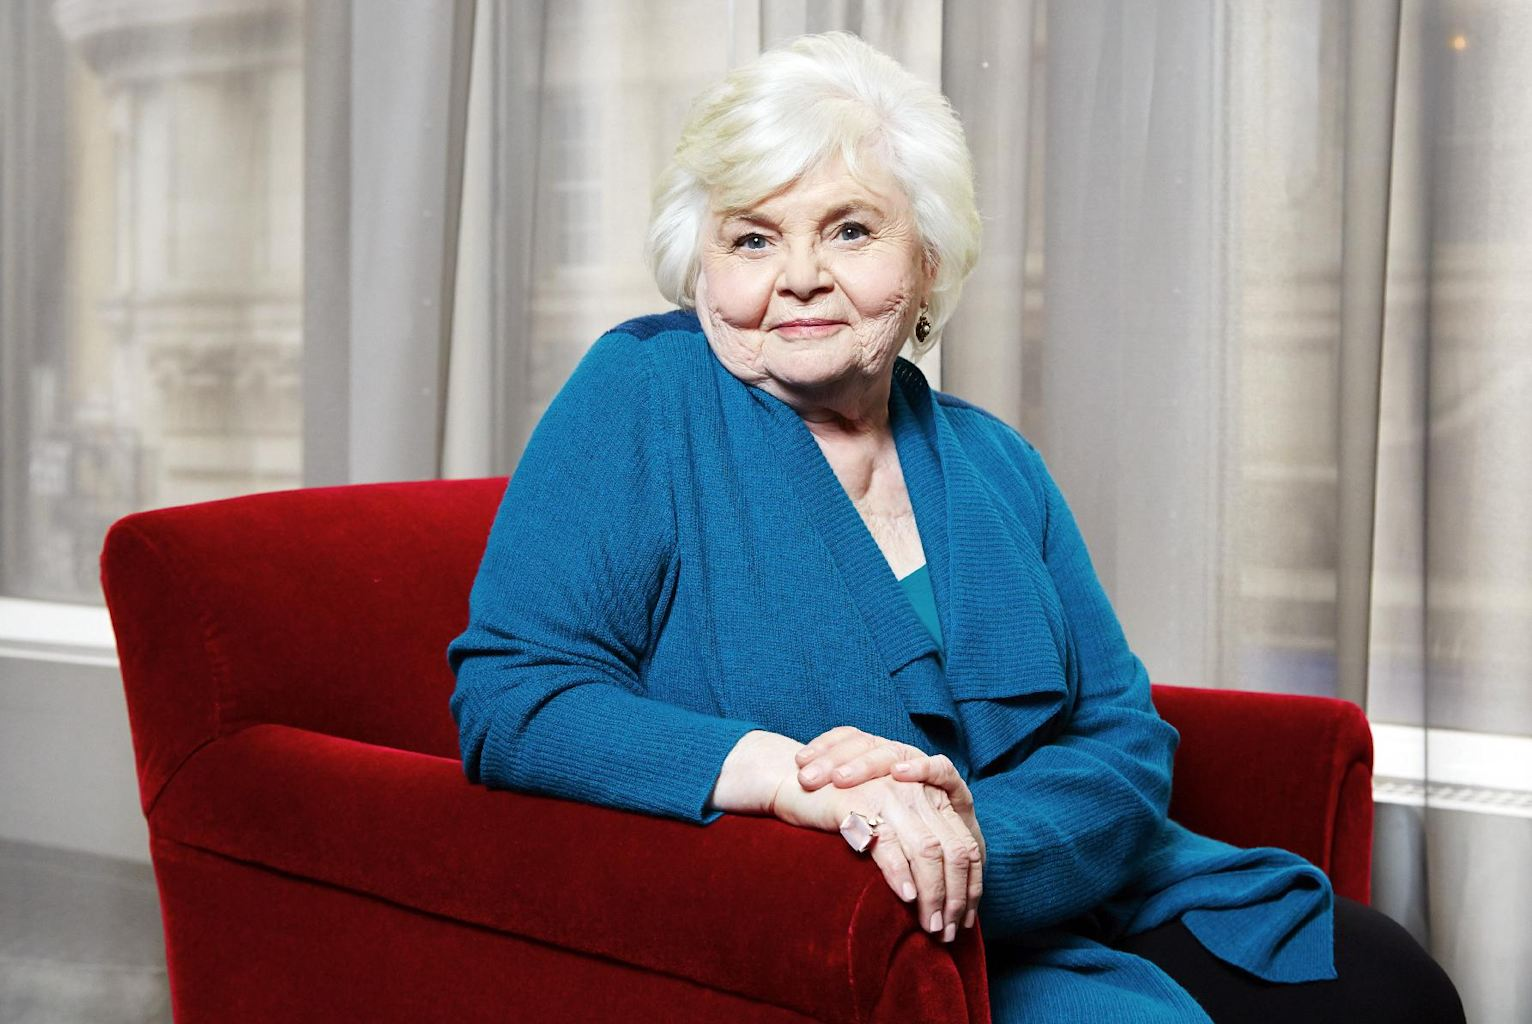 This Jan. 27, 2014 photo shows Oscar-nominated actress June Squibb in